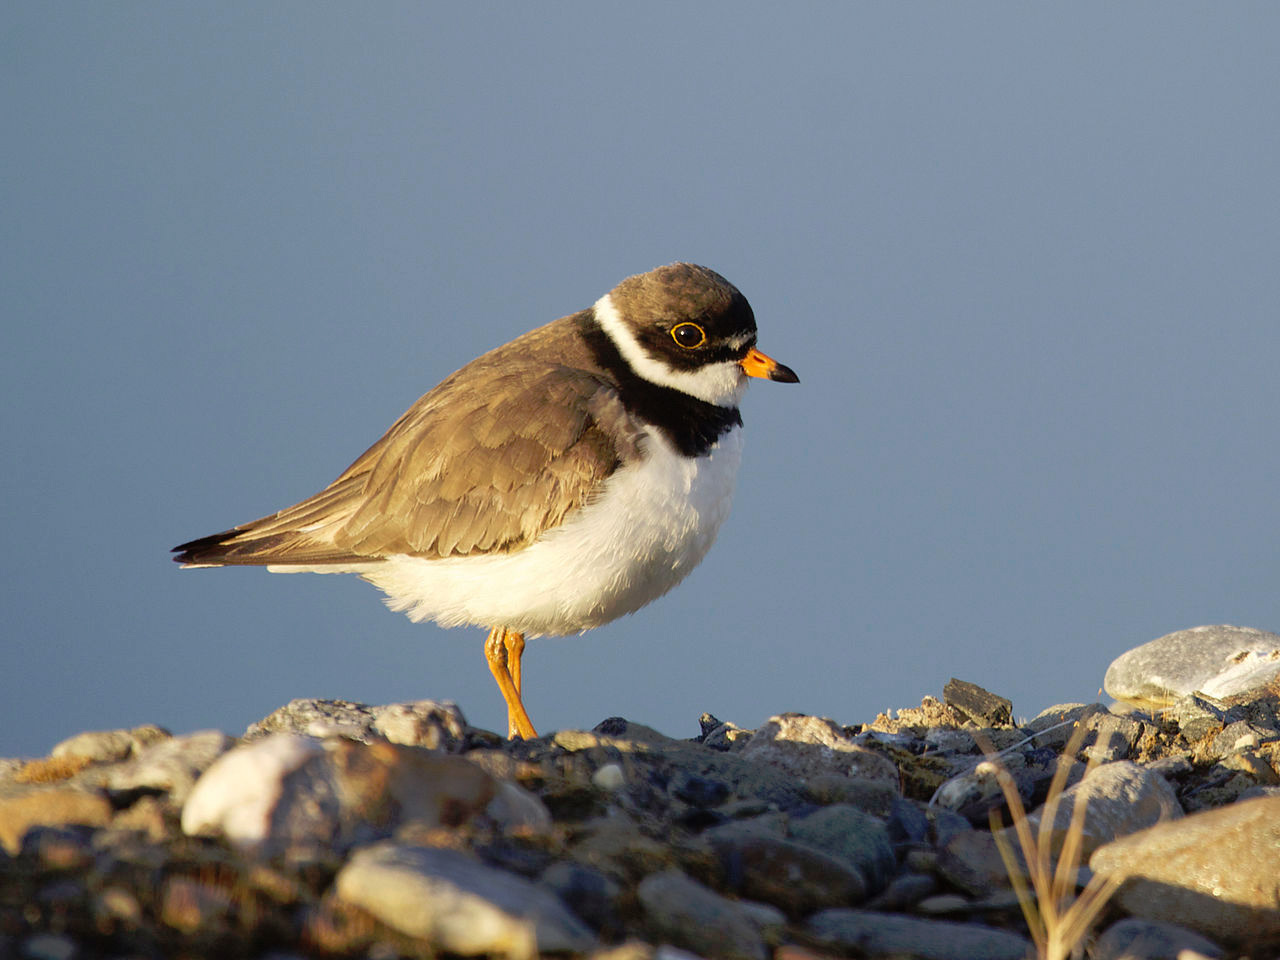 Semipalmated plover photo by Gregory Smith / Wikimedia